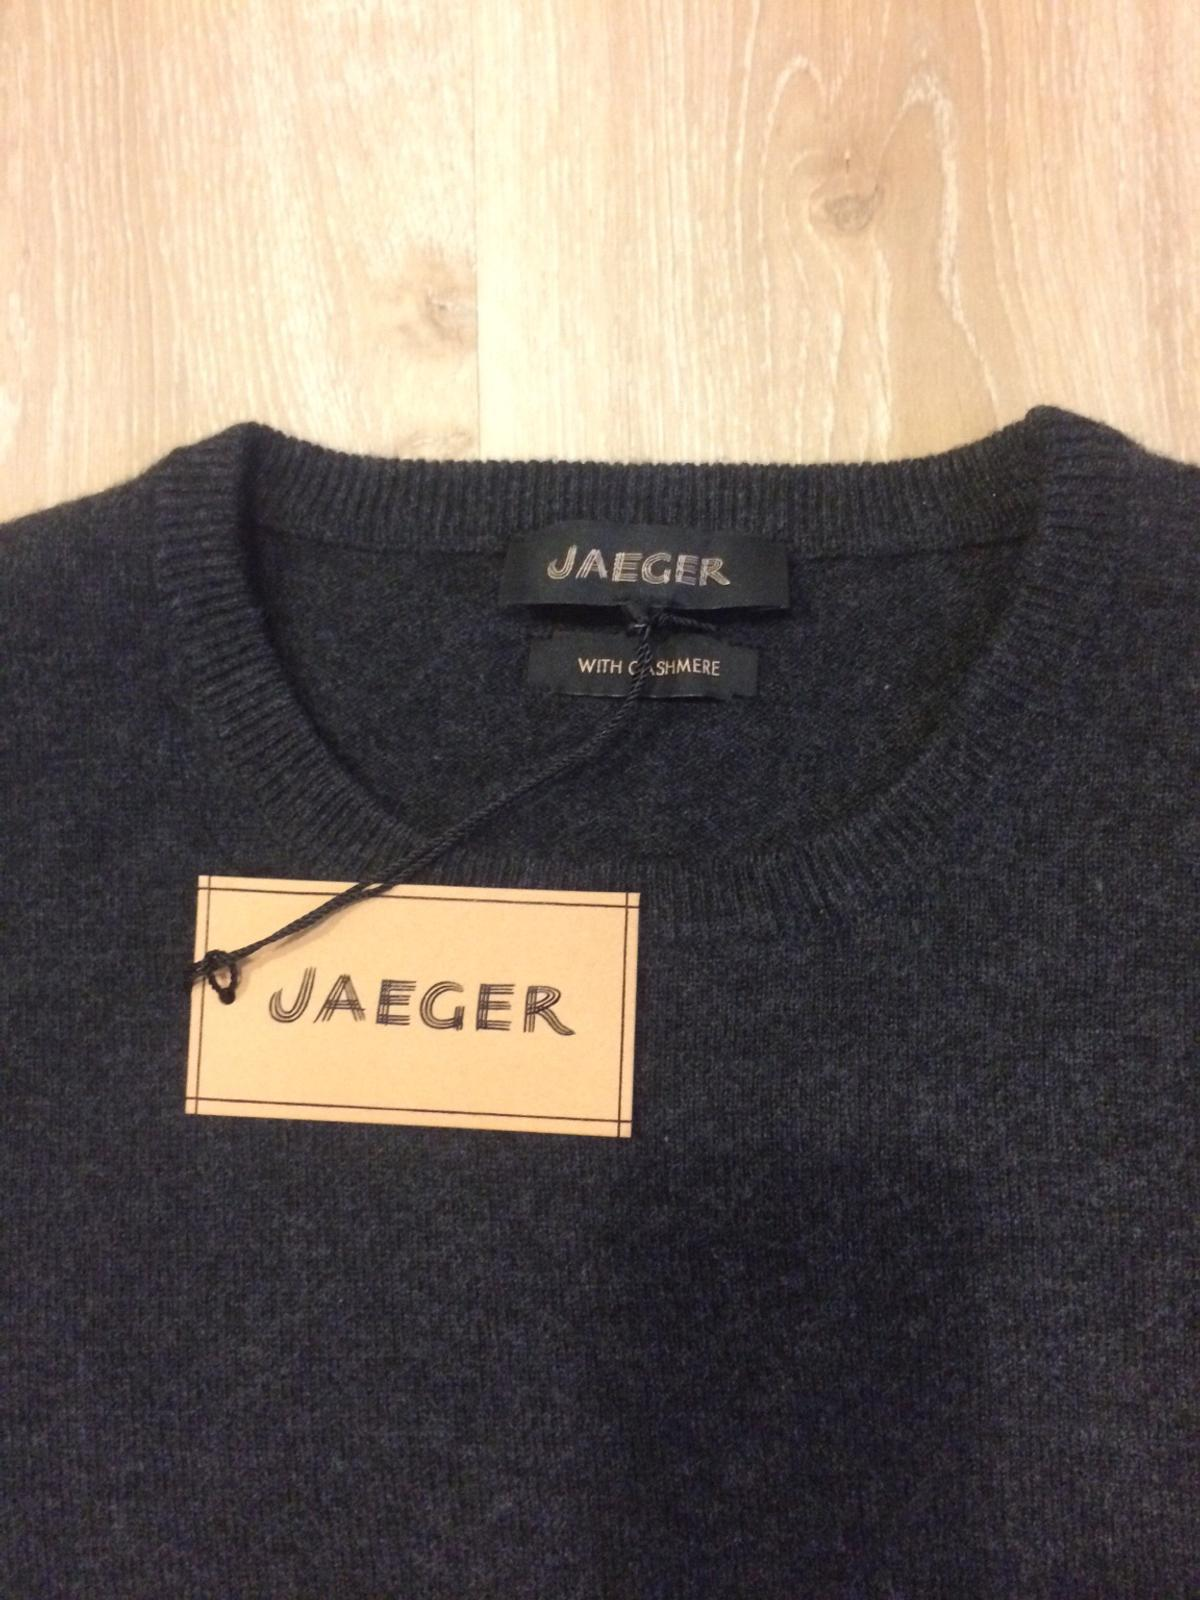 Jaeger Wool Cashmere Blend Sweater In Nw9 Edgware For 20 00 For Sale Shpock